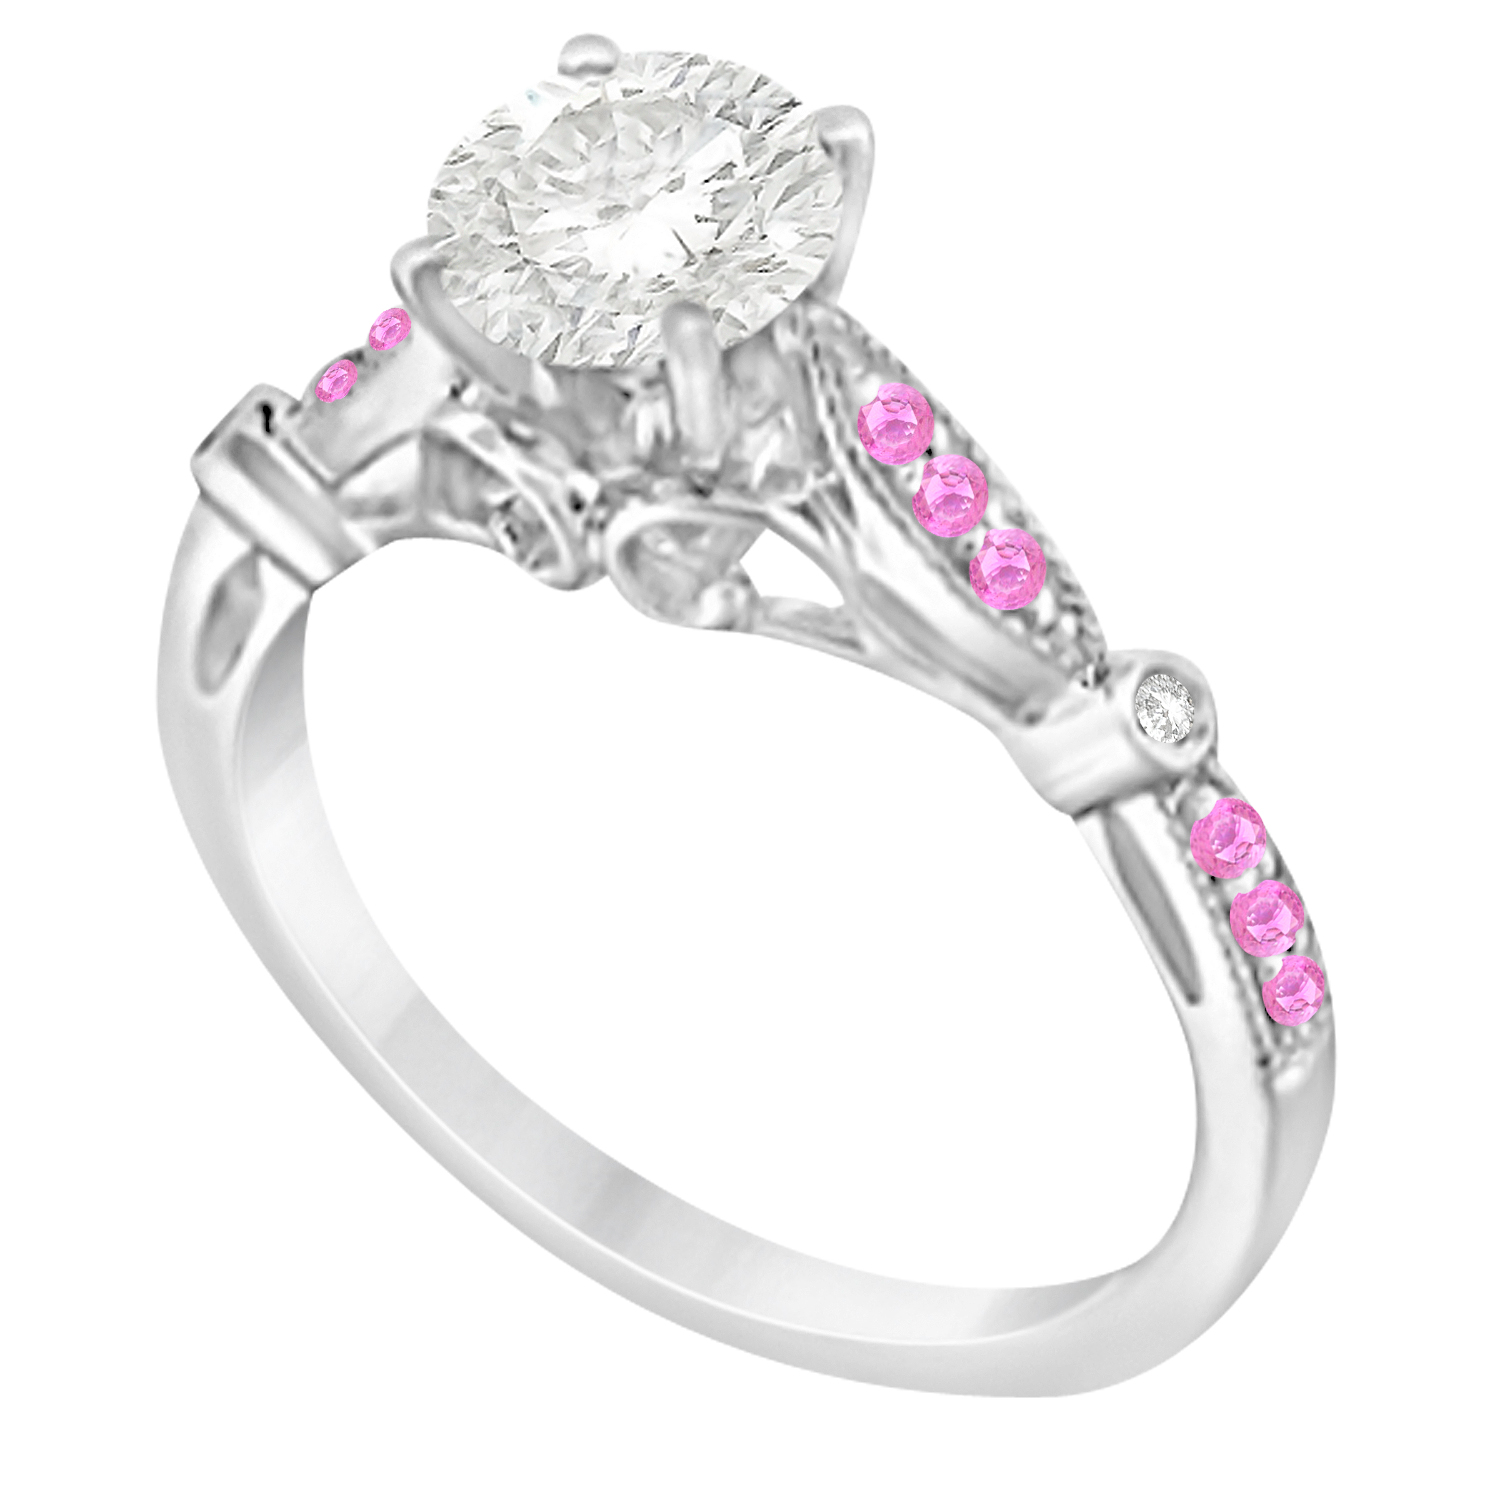 Marquise & Dot Pink Sapphire Vintage Engagement Ring 14k White Gold 0.13ct